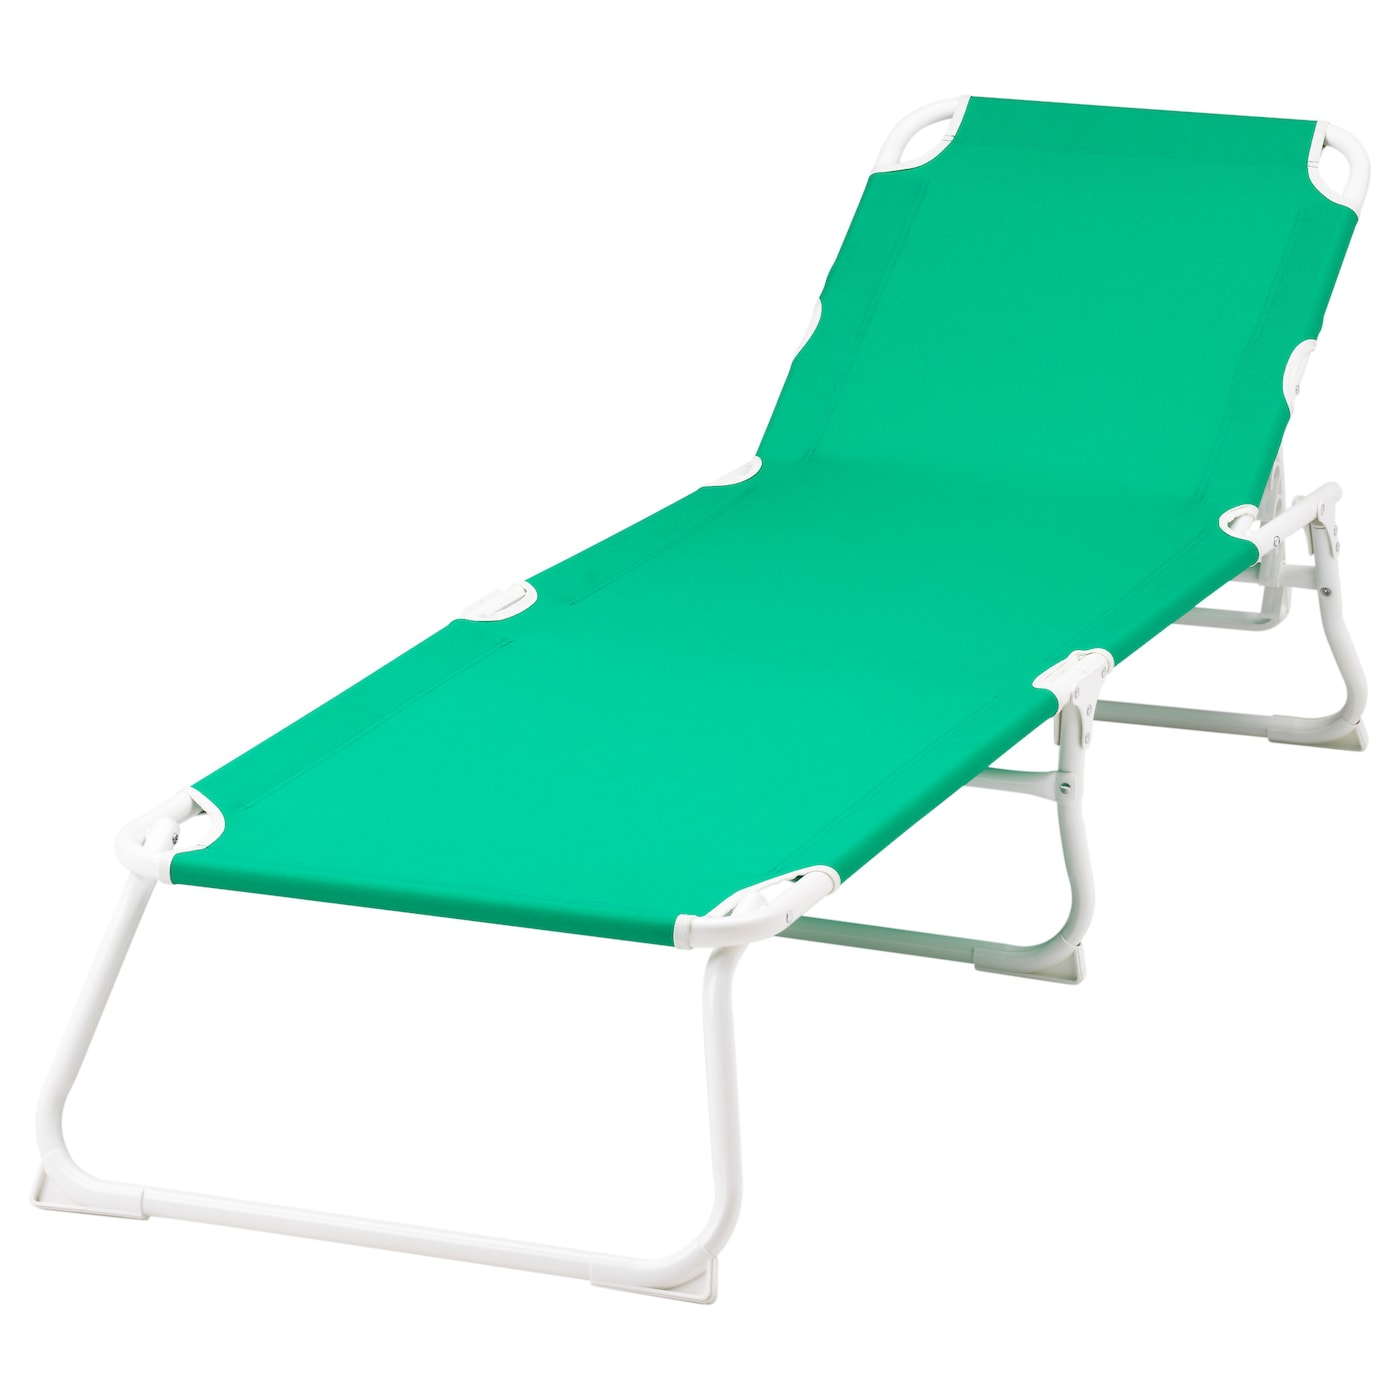 h m sun lounger green ikea. Black Bedroom Furniture Sets. Home Design Ideas